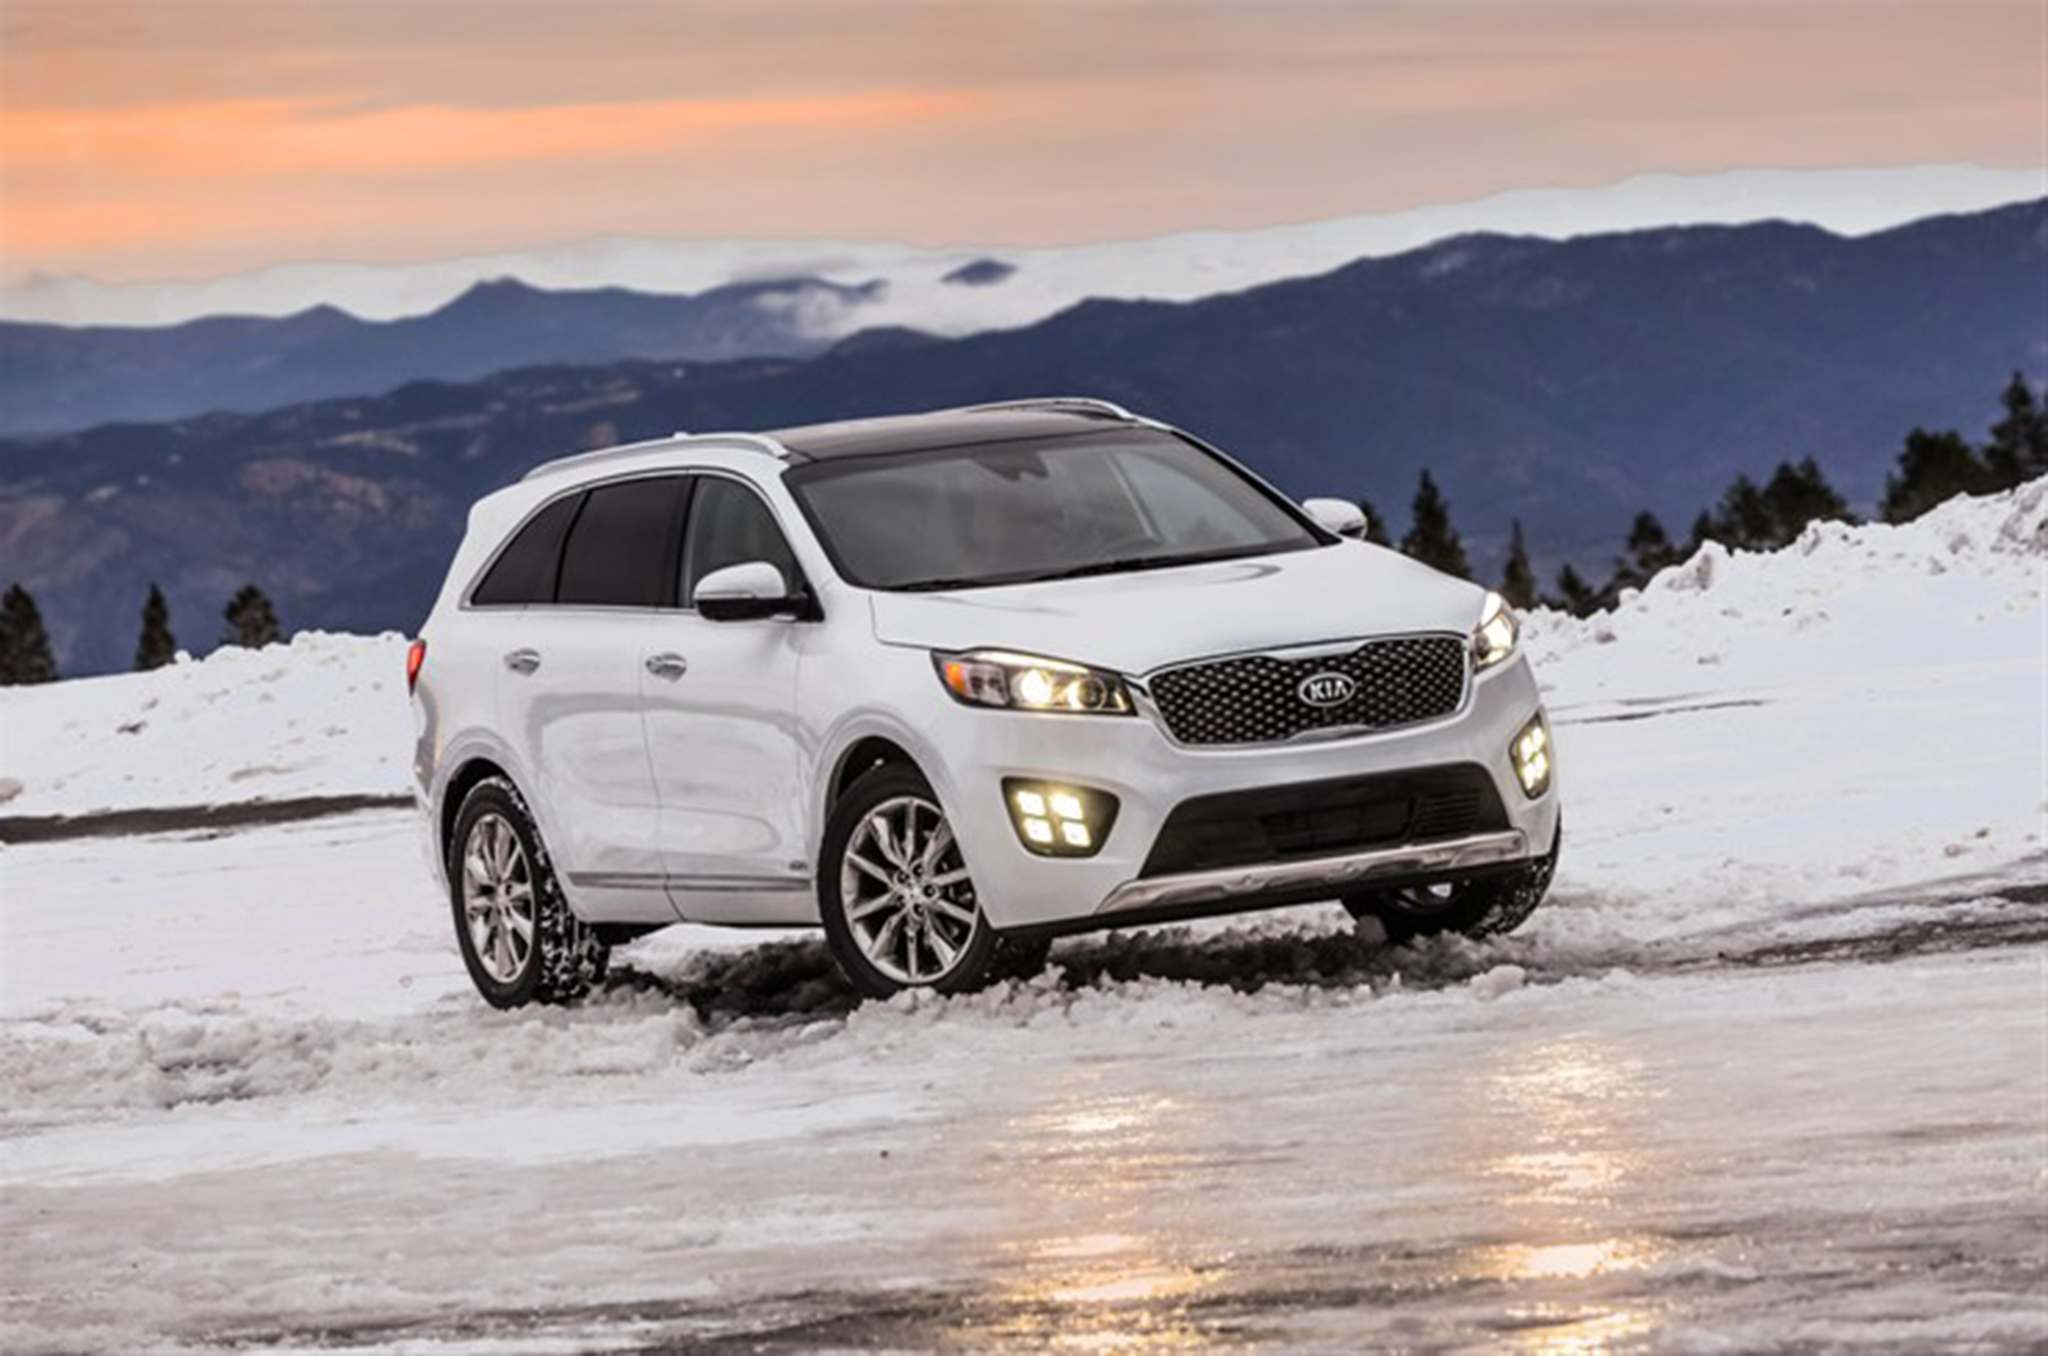 The 2016 Kia Sorento offers new technology previously unavailable on the Sorento, including vehicle stability control, forward collision warning and smart cruise control. (Photo courtesy Kia/TNS)